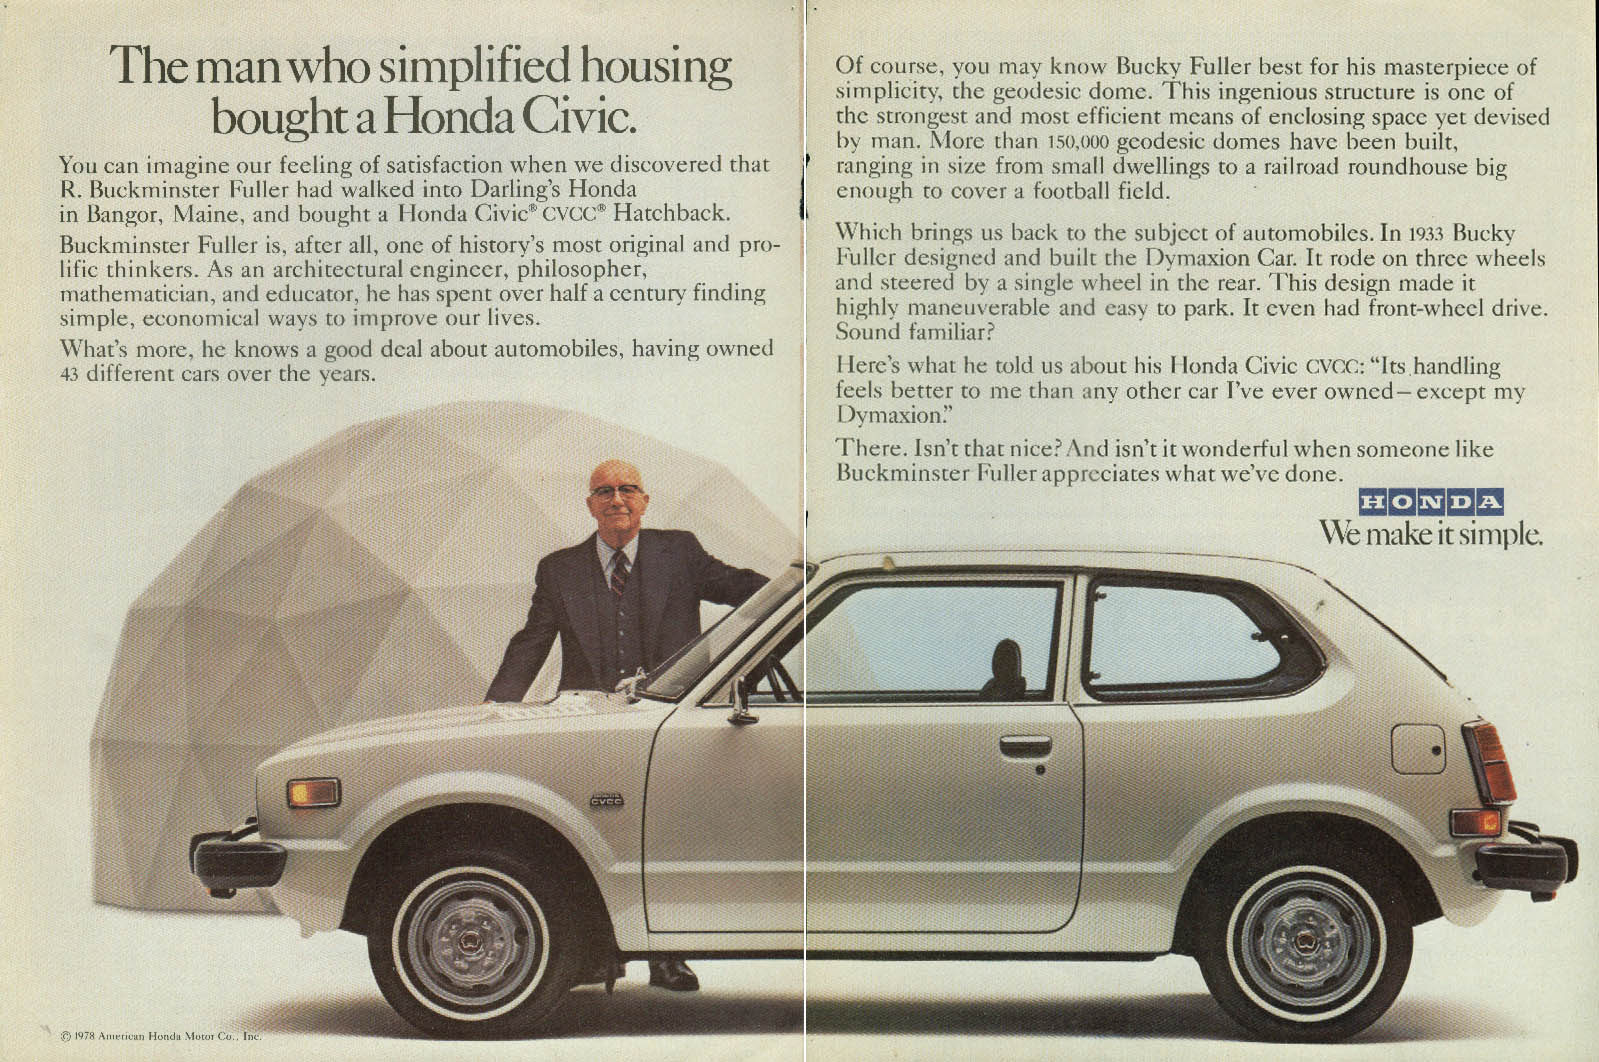 The man who simplified housing bought a Honda Civic ad 1979 Buckminster Fuller